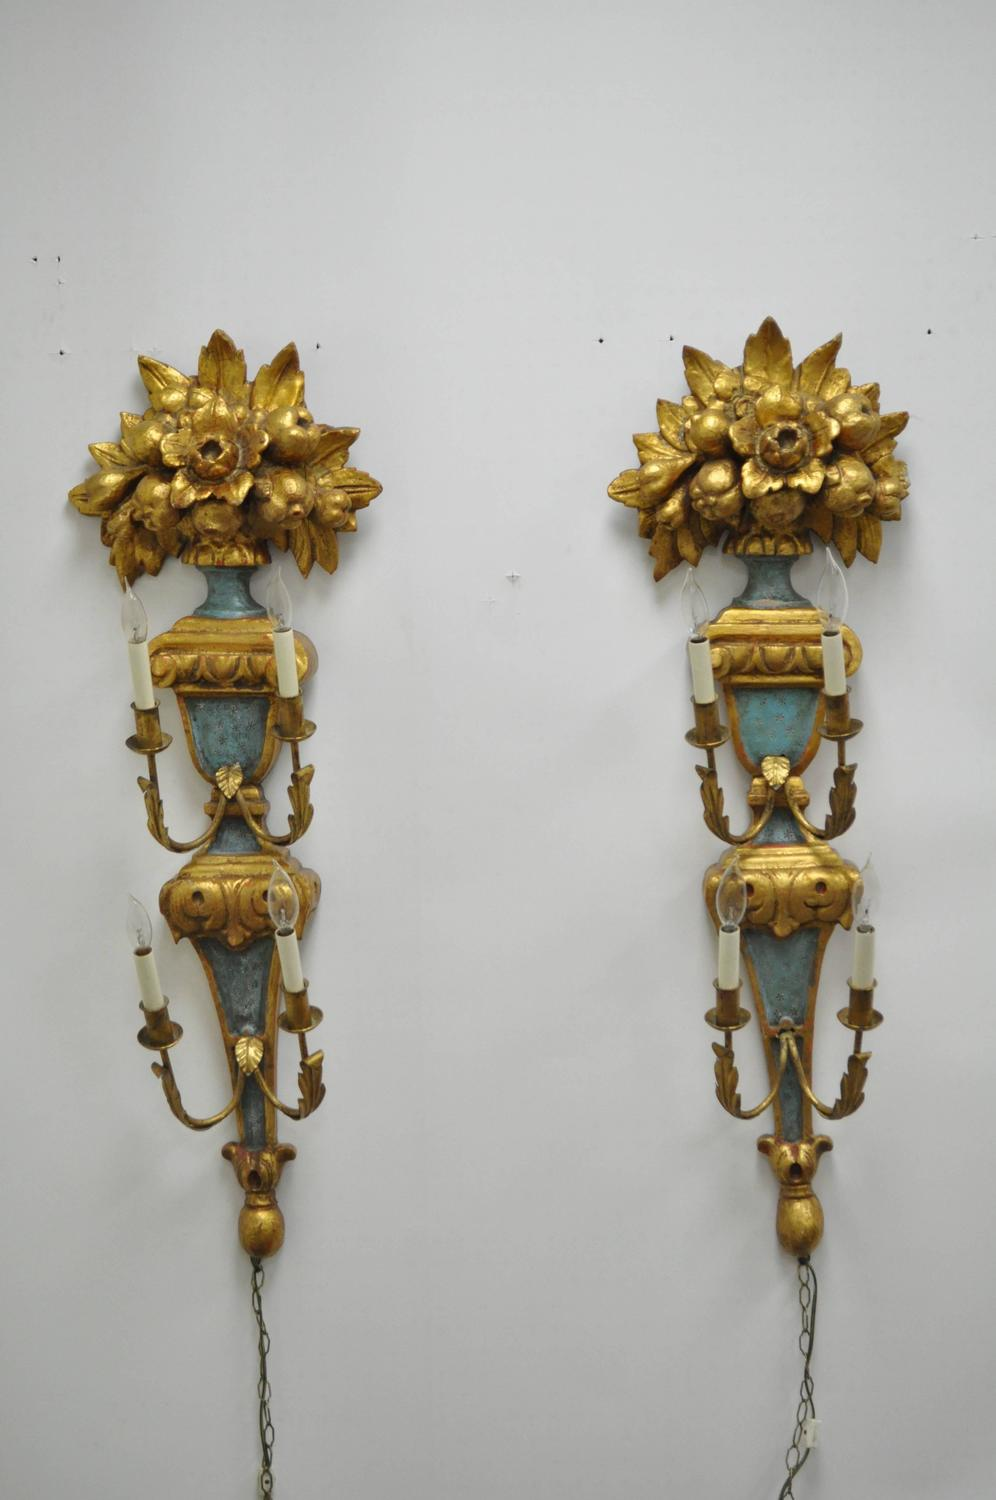 Pair of 1950s Carved Giltwood Italian Style Four-Light Wall Sconces by Masa For Sale at 1stdibs